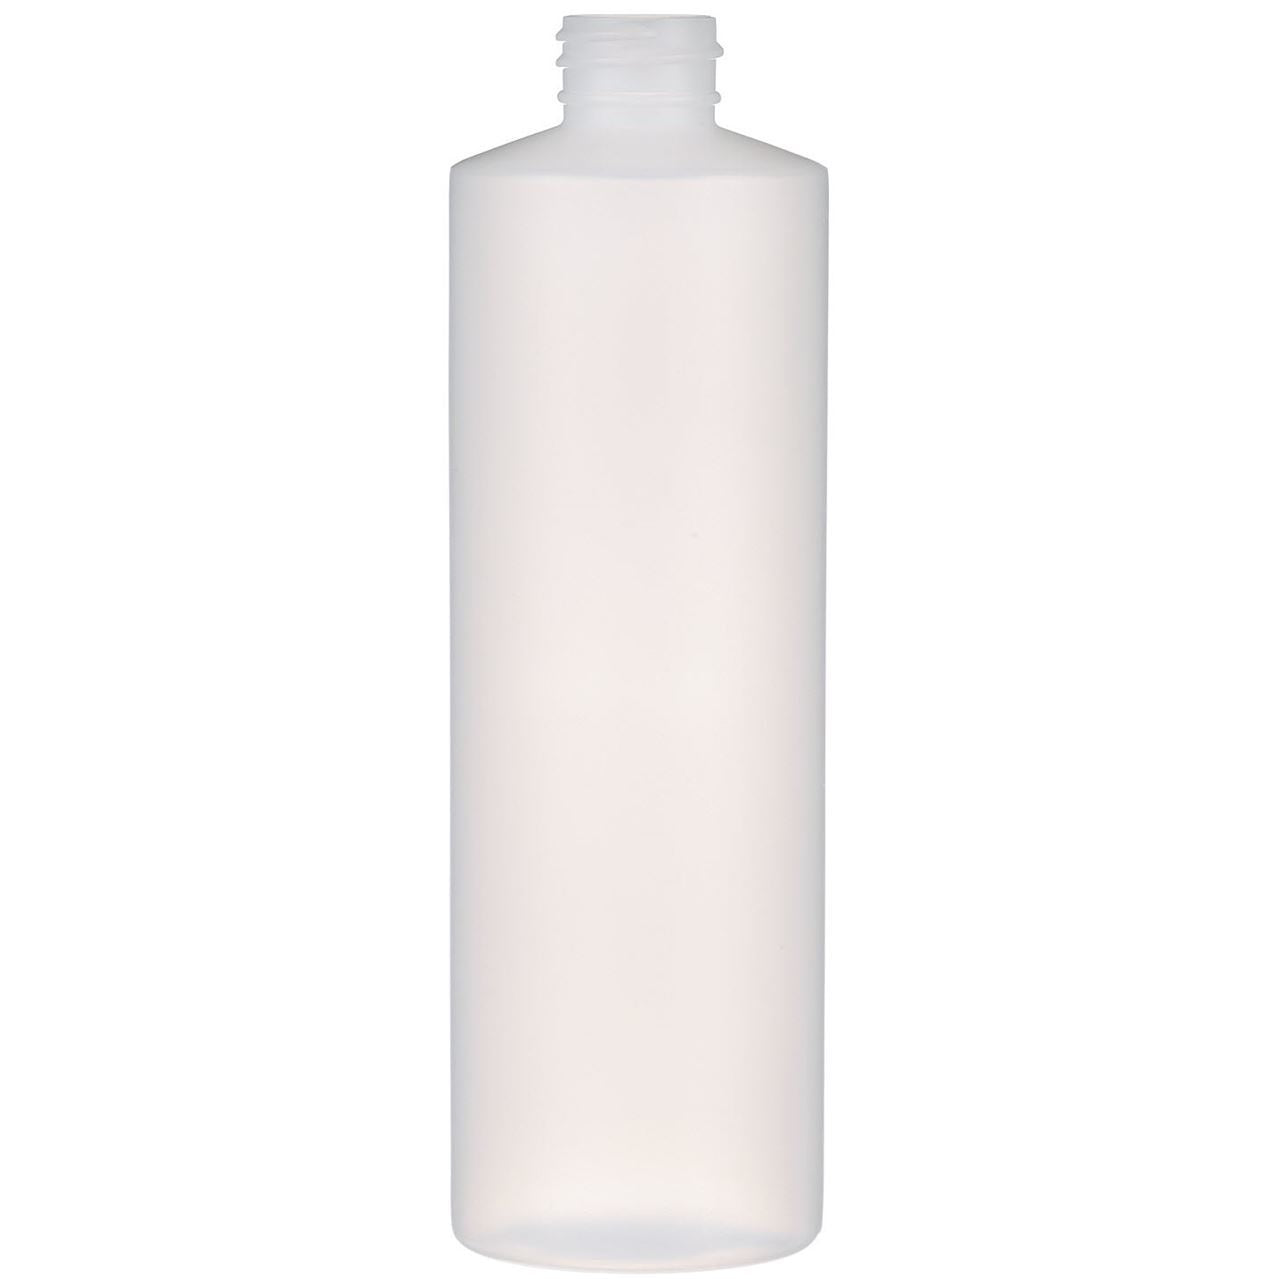 NATURAL PLASTIC CYLINDER BOTTLE 16 OZ. - Nails Plus Depot